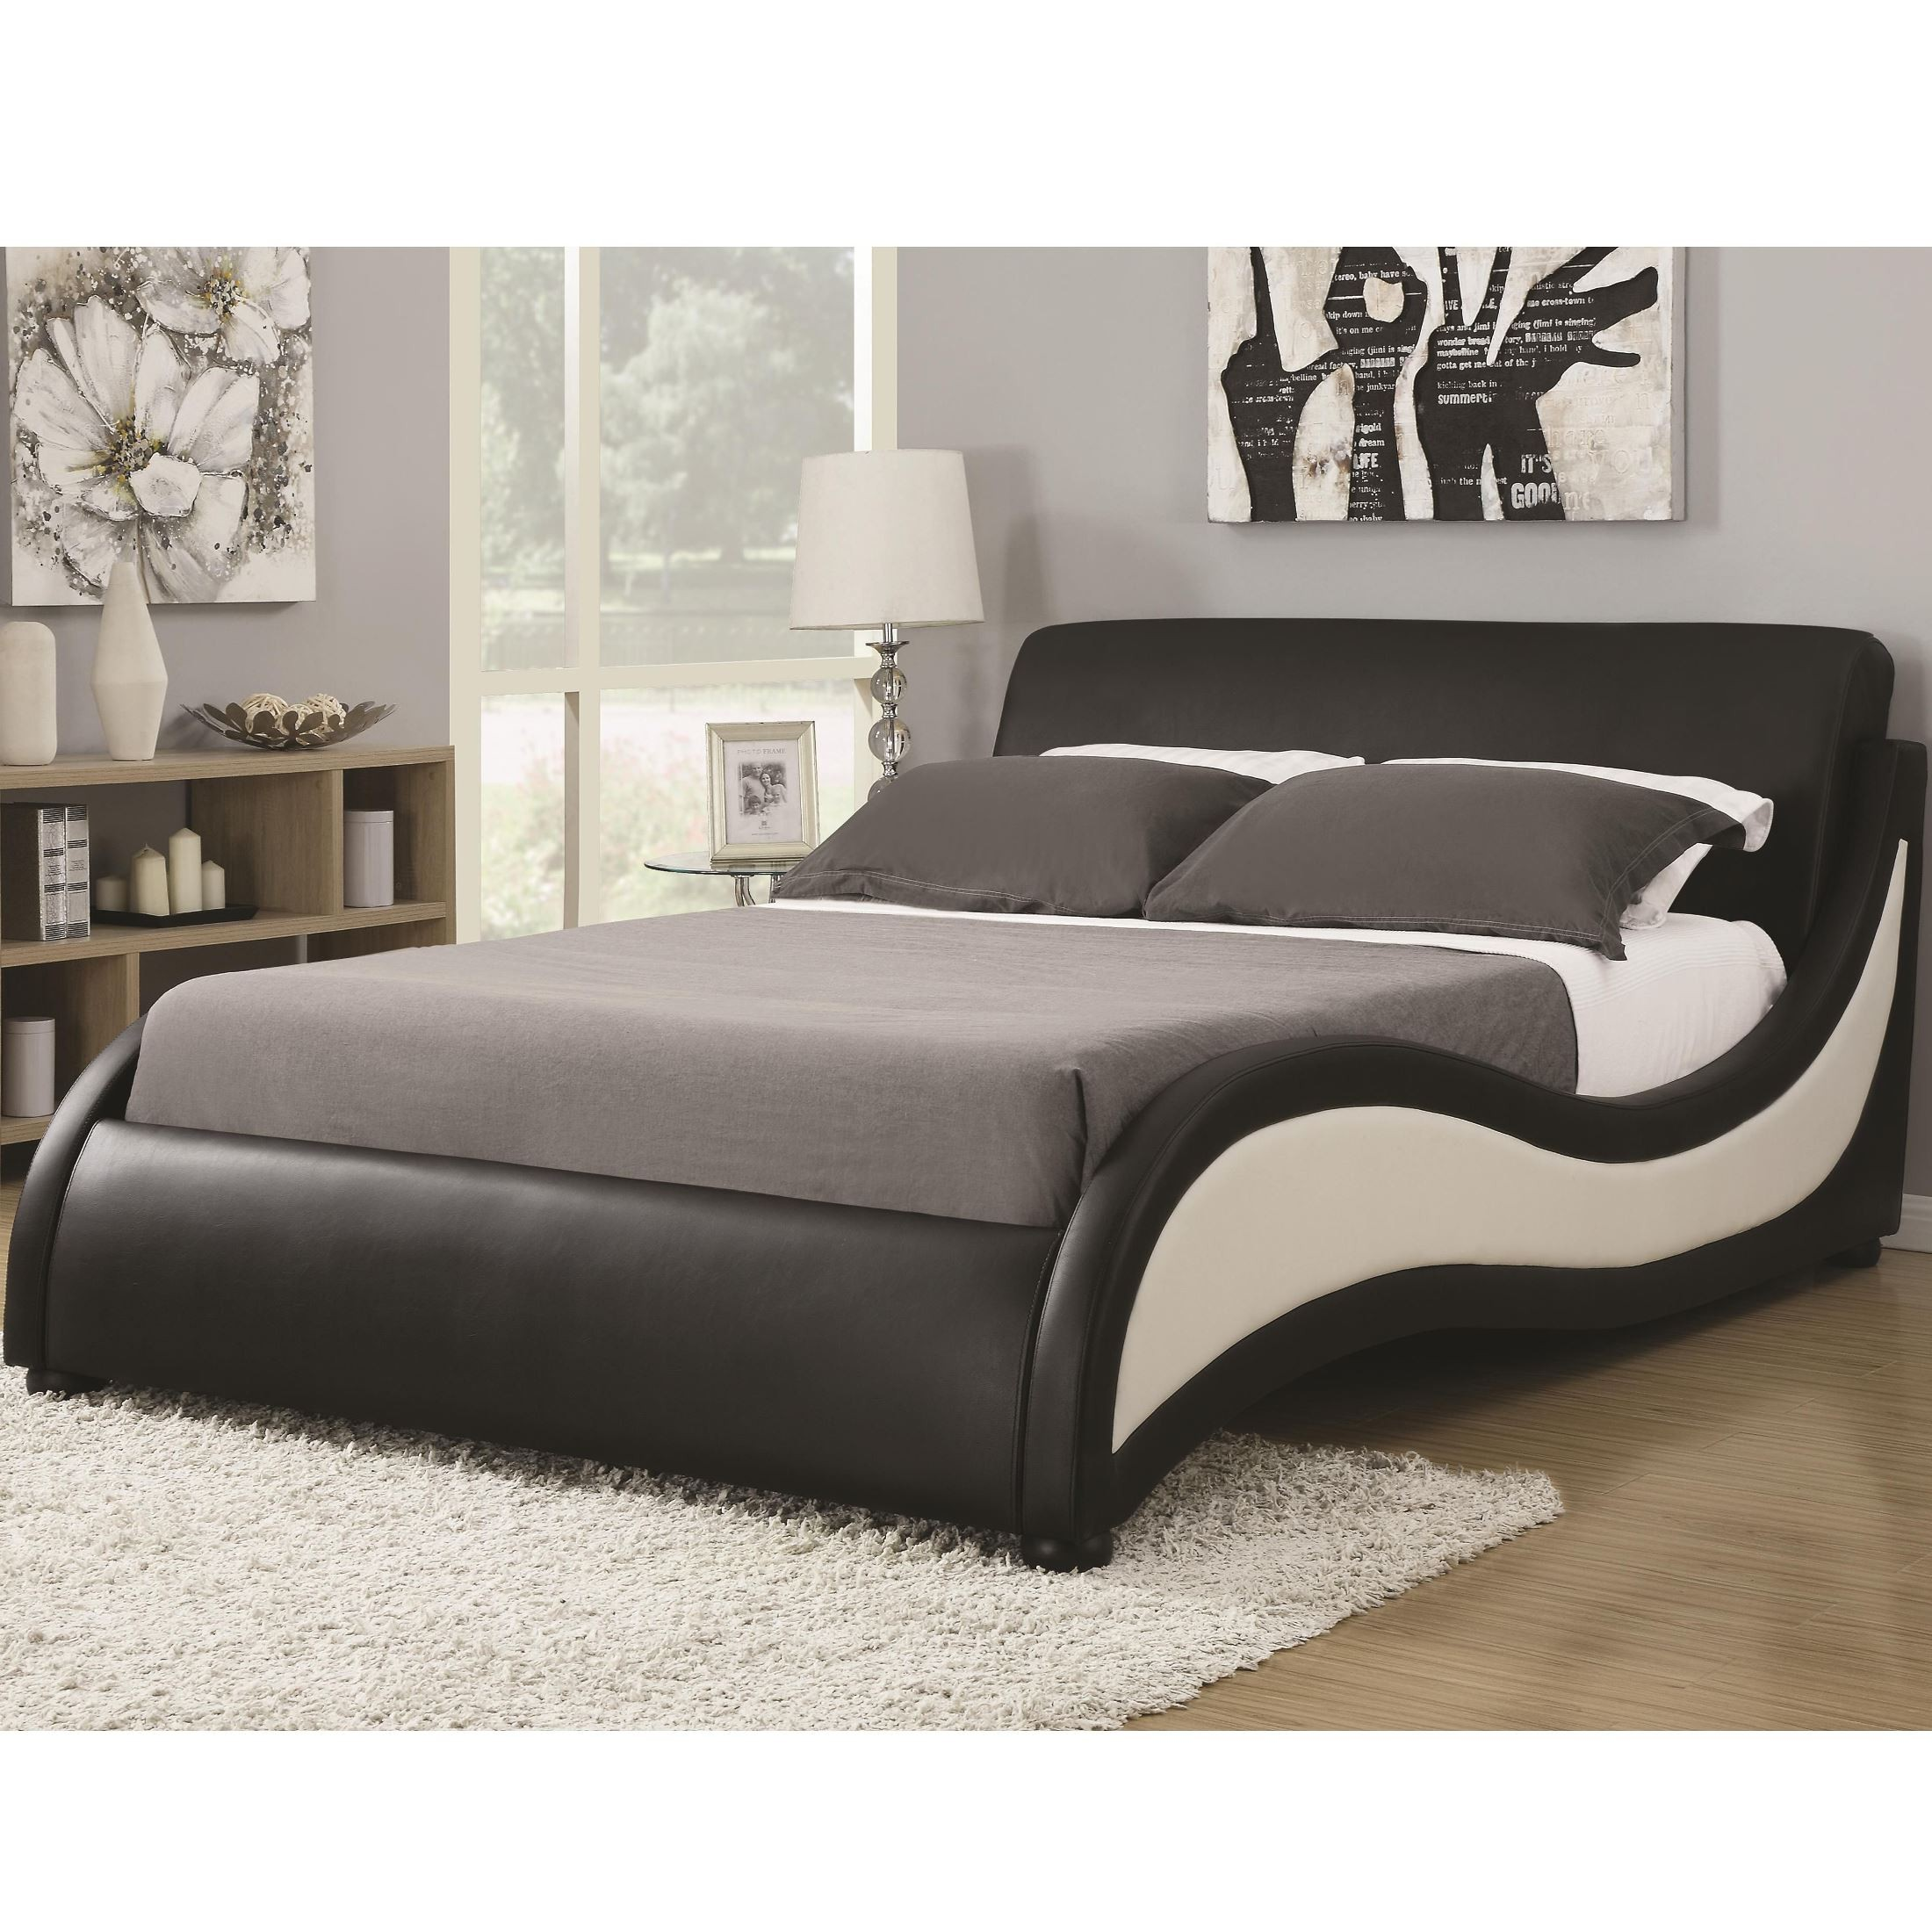 Image Result For Queen Size Mattress On Sale